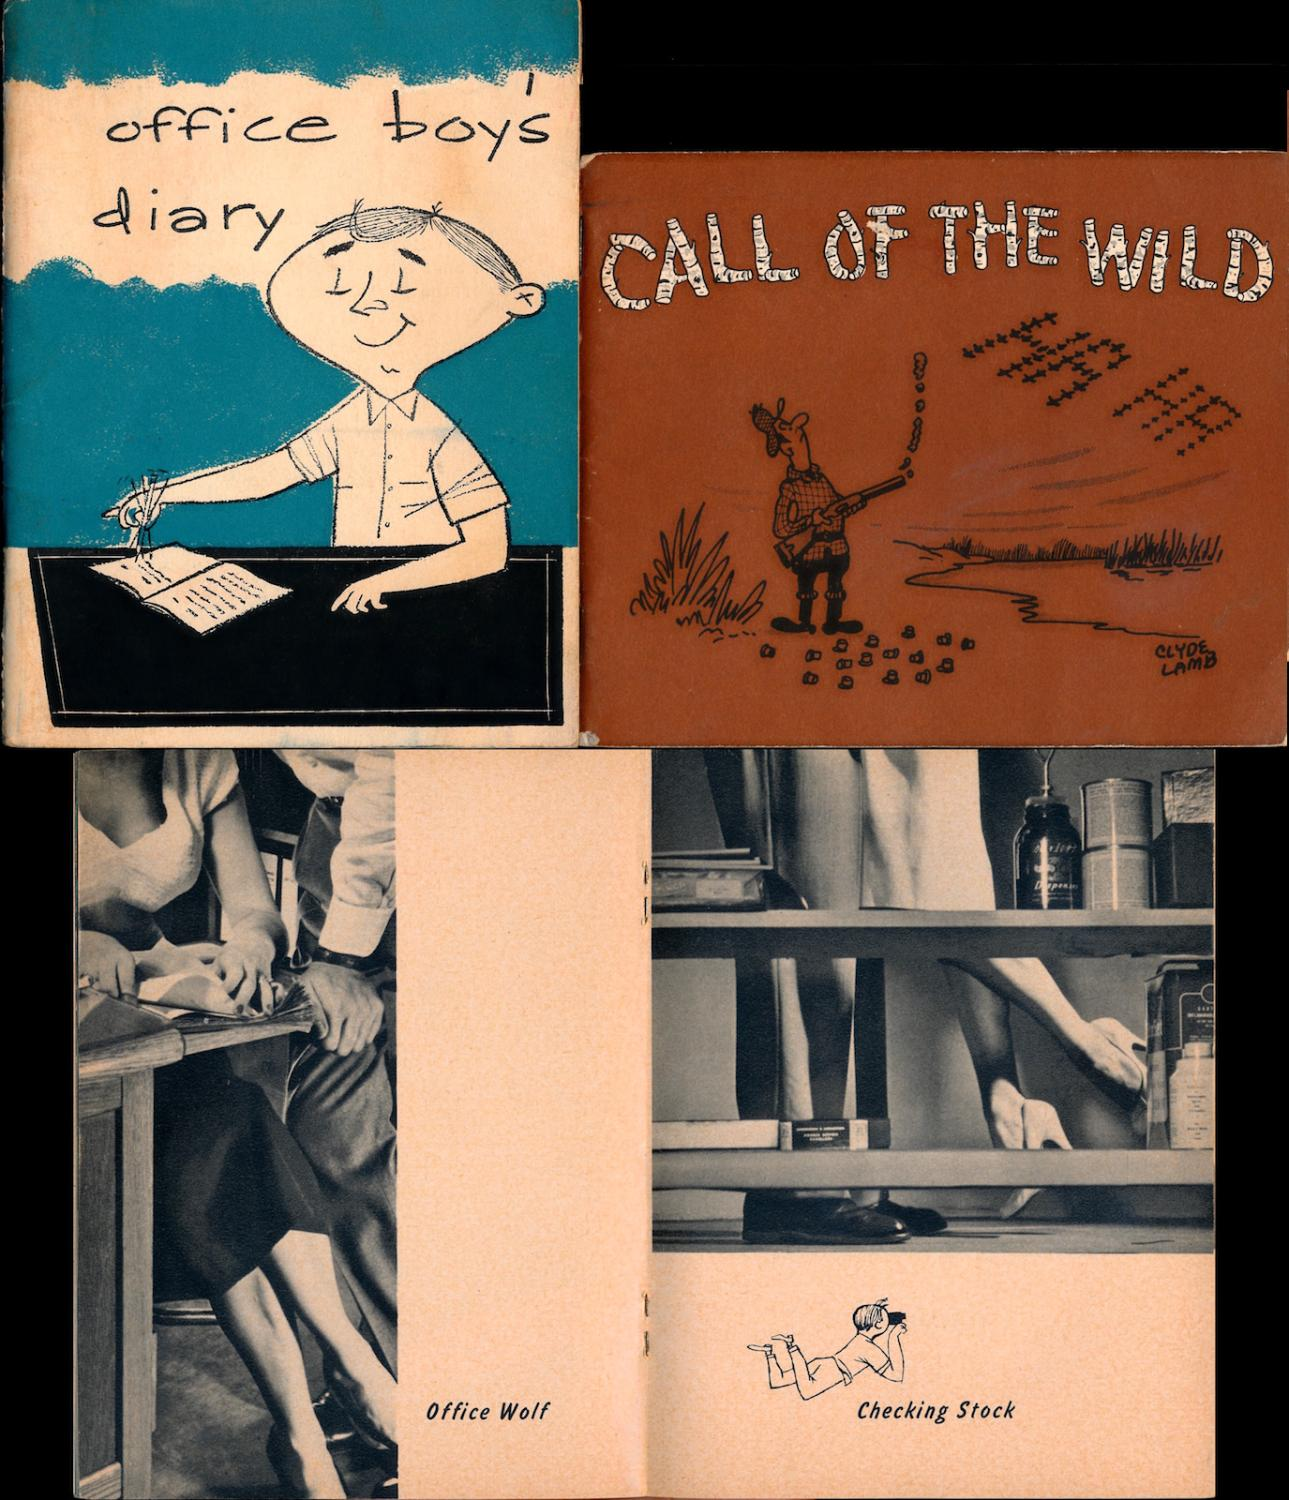 Office Boy's Diary / Call of the Wild (2 vintage pocket booklets, 1 pinup & 1 cartoon, 1957-58)